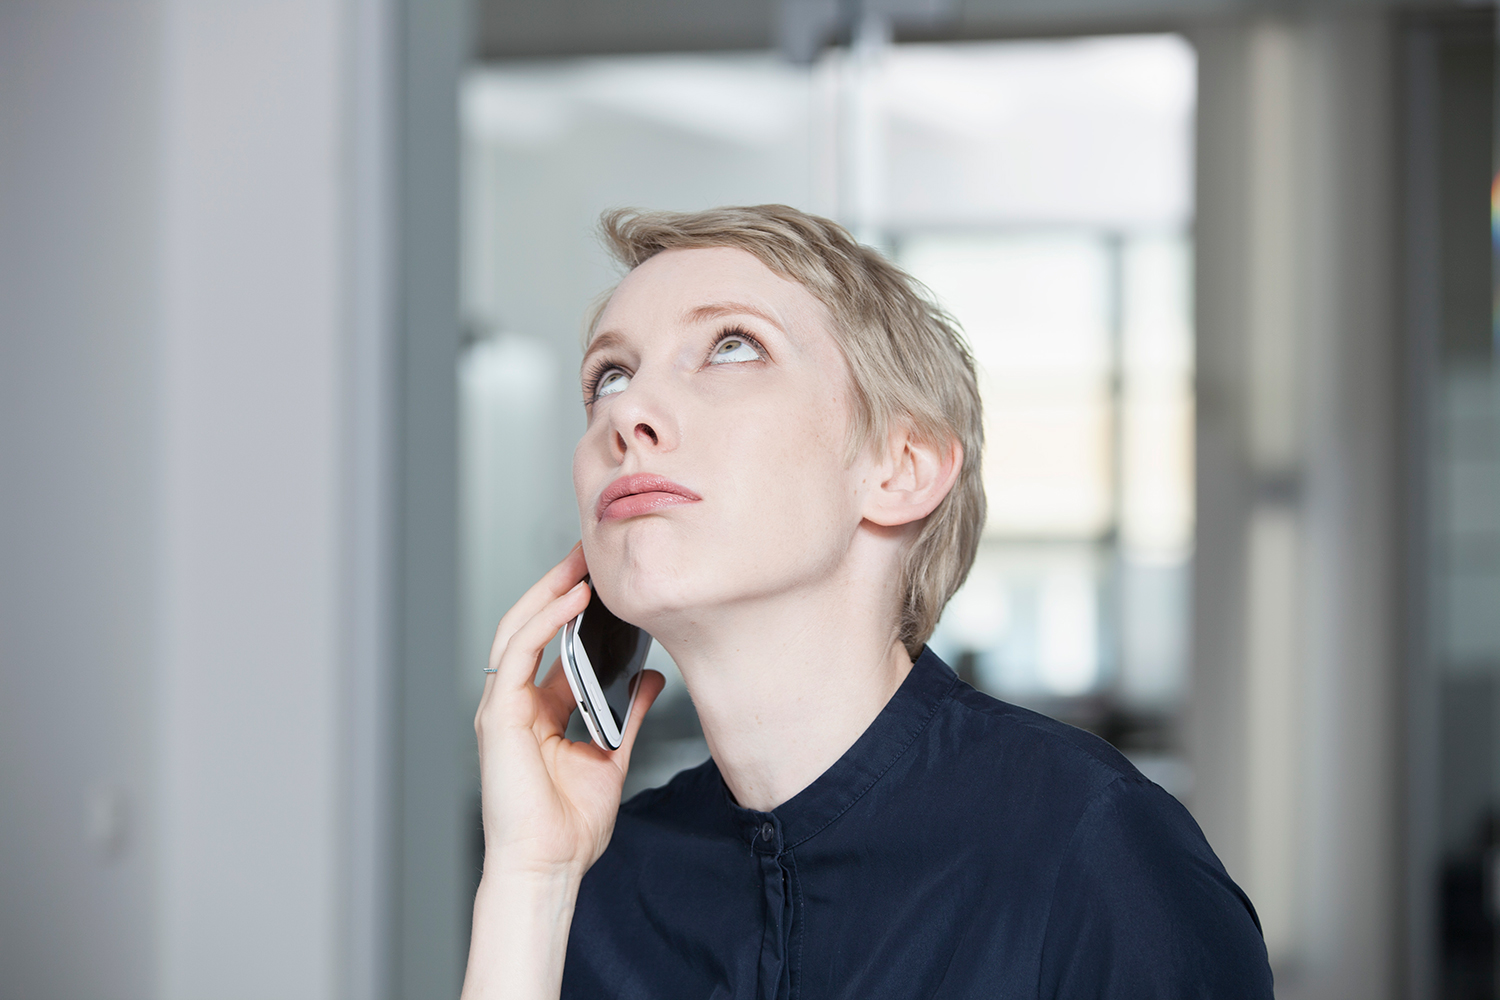 Woman Angry While on Phone